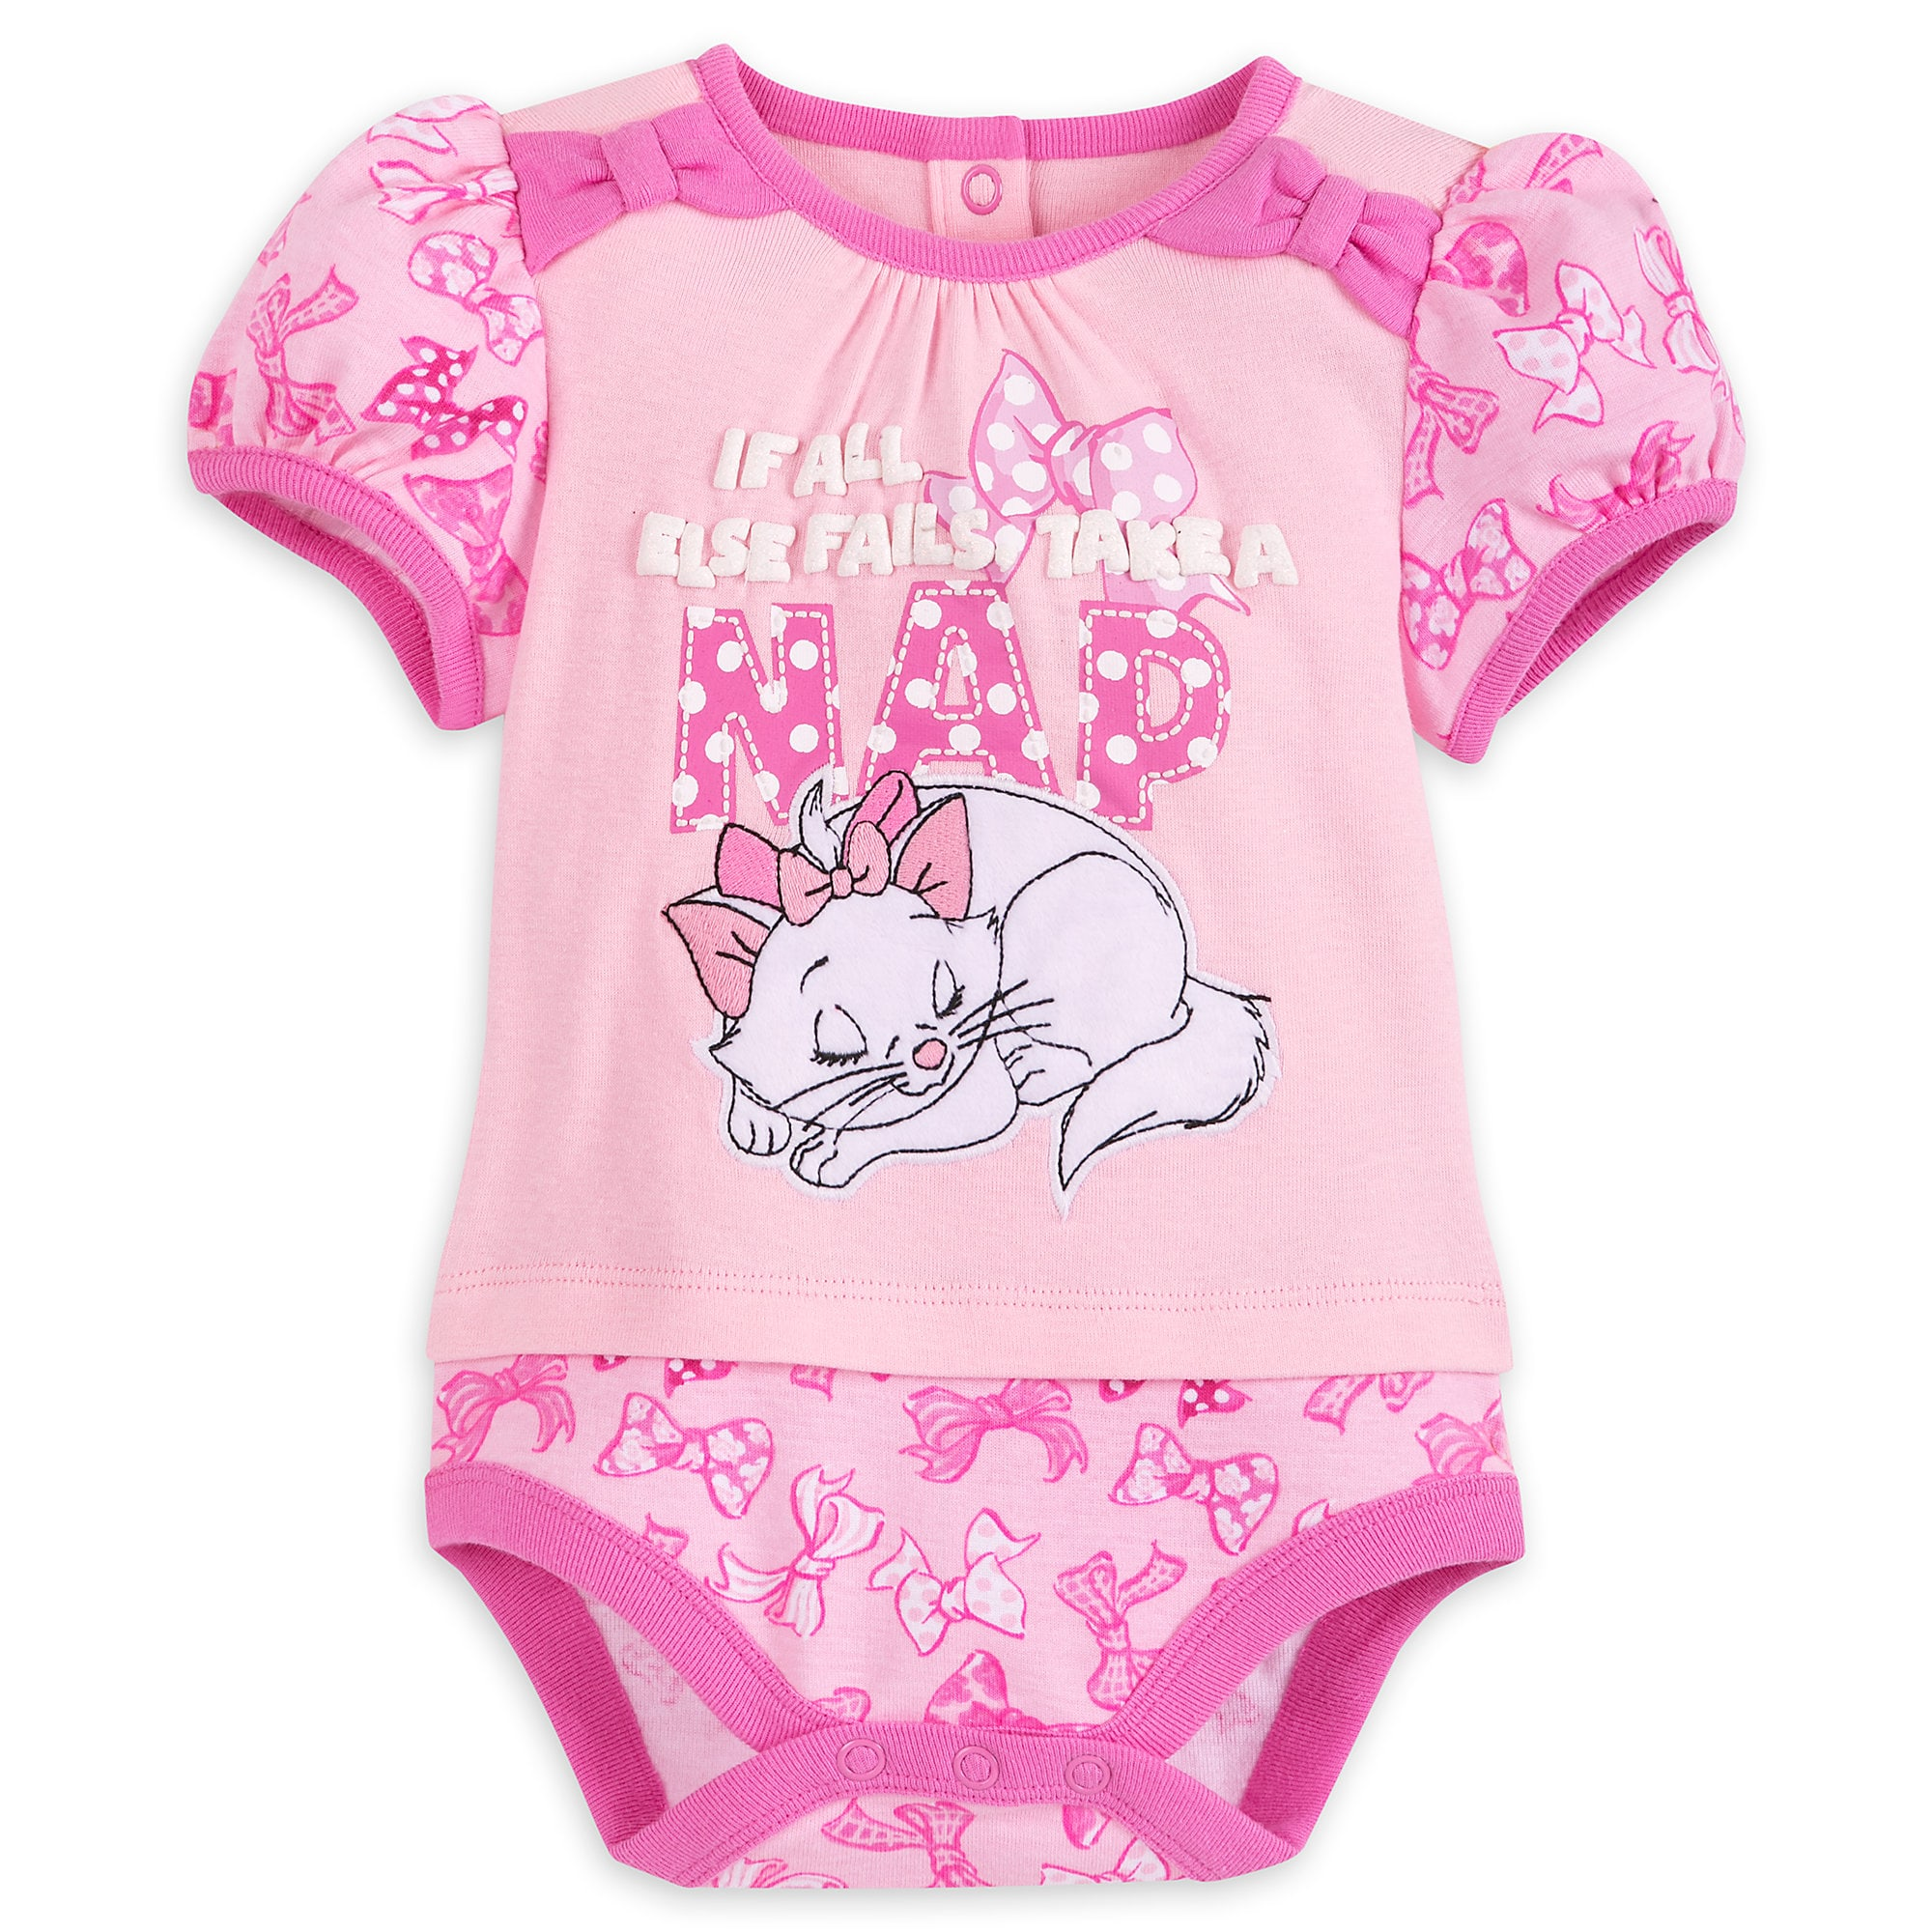 Marie Disney Cuddly Bodysuit for Baby The Aristocats